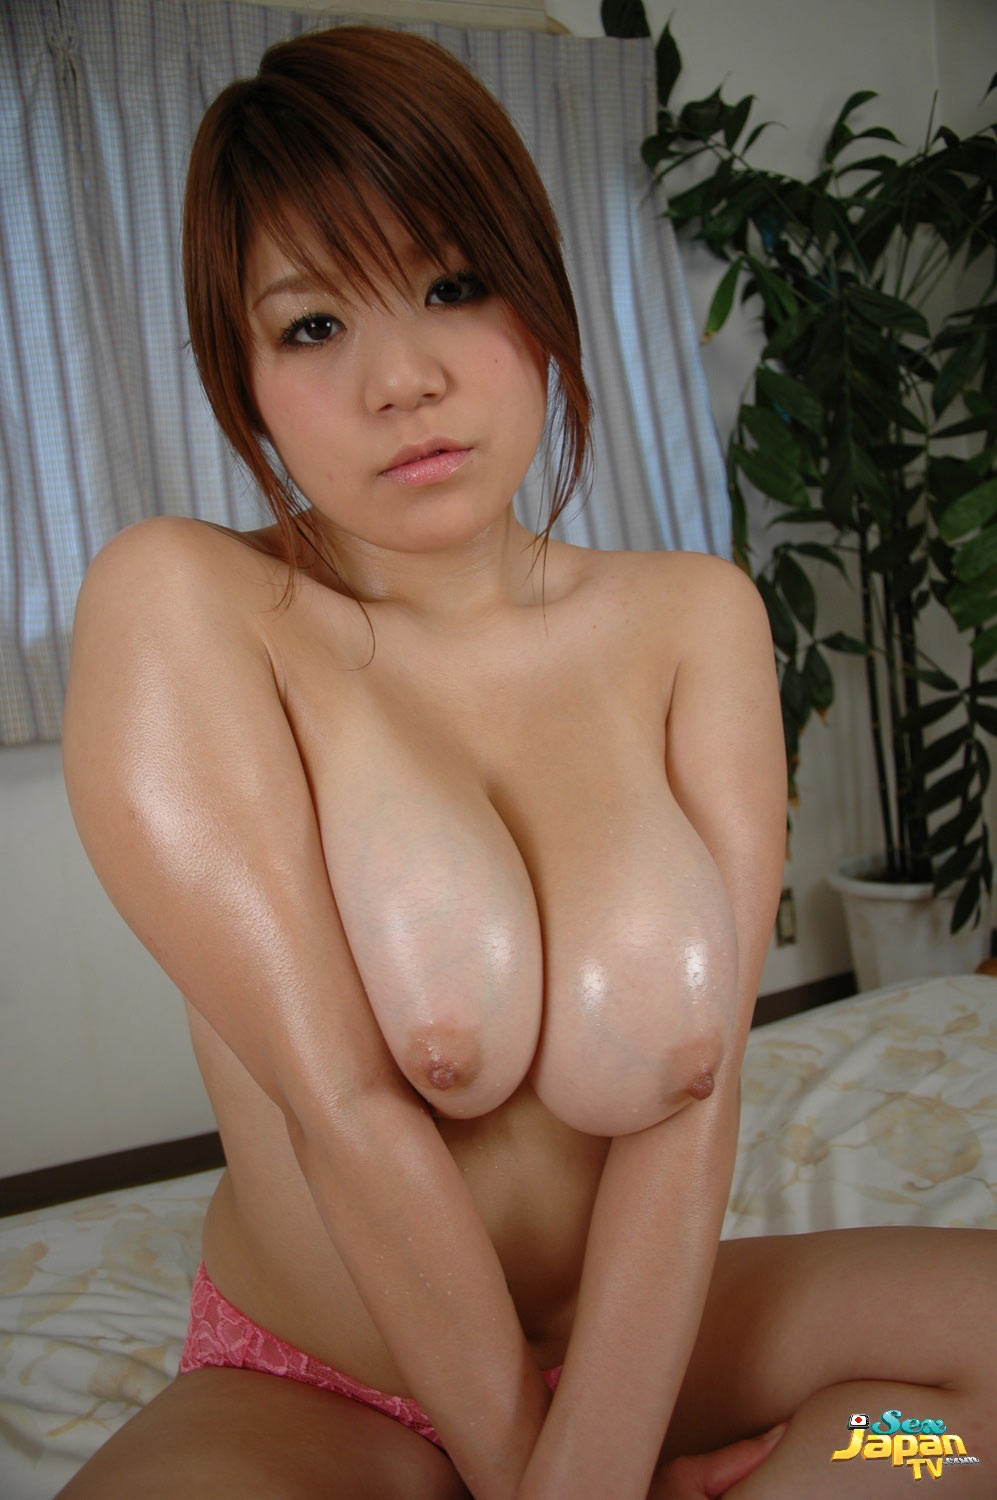 Big breasted japanese women